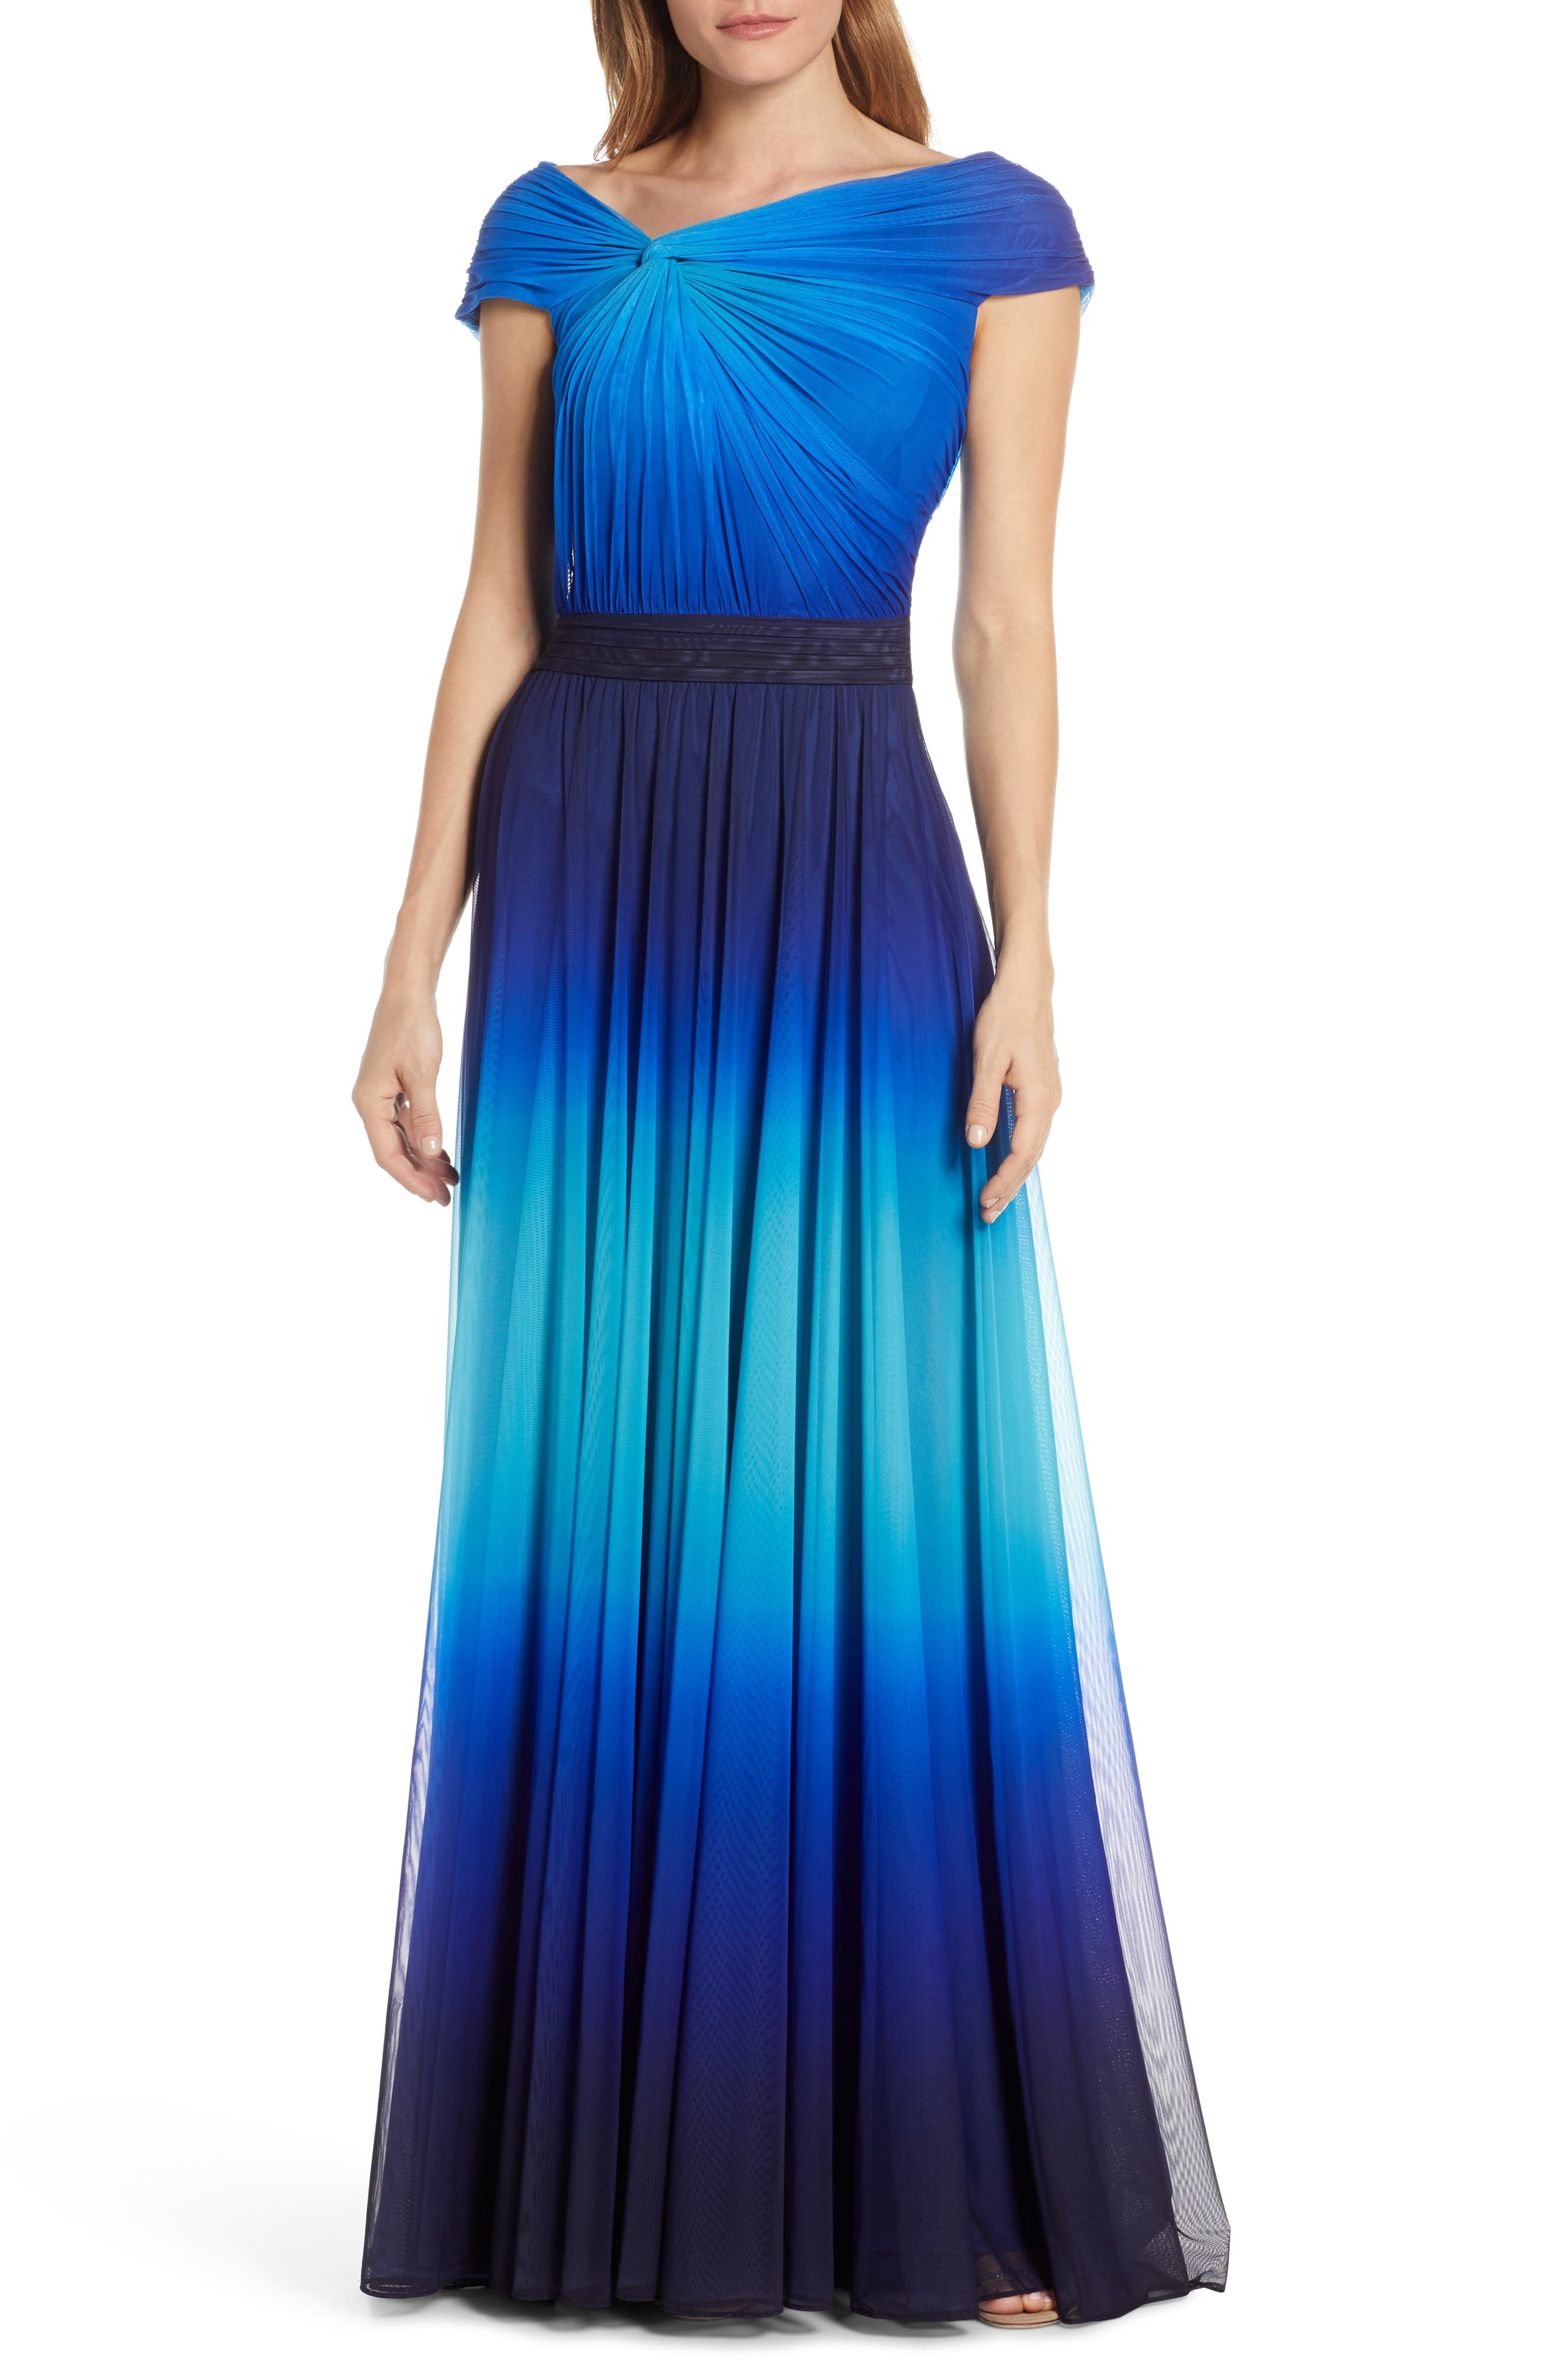 Tadashi Shoji Knotted Ombre Mesh Evening Gown, Blue